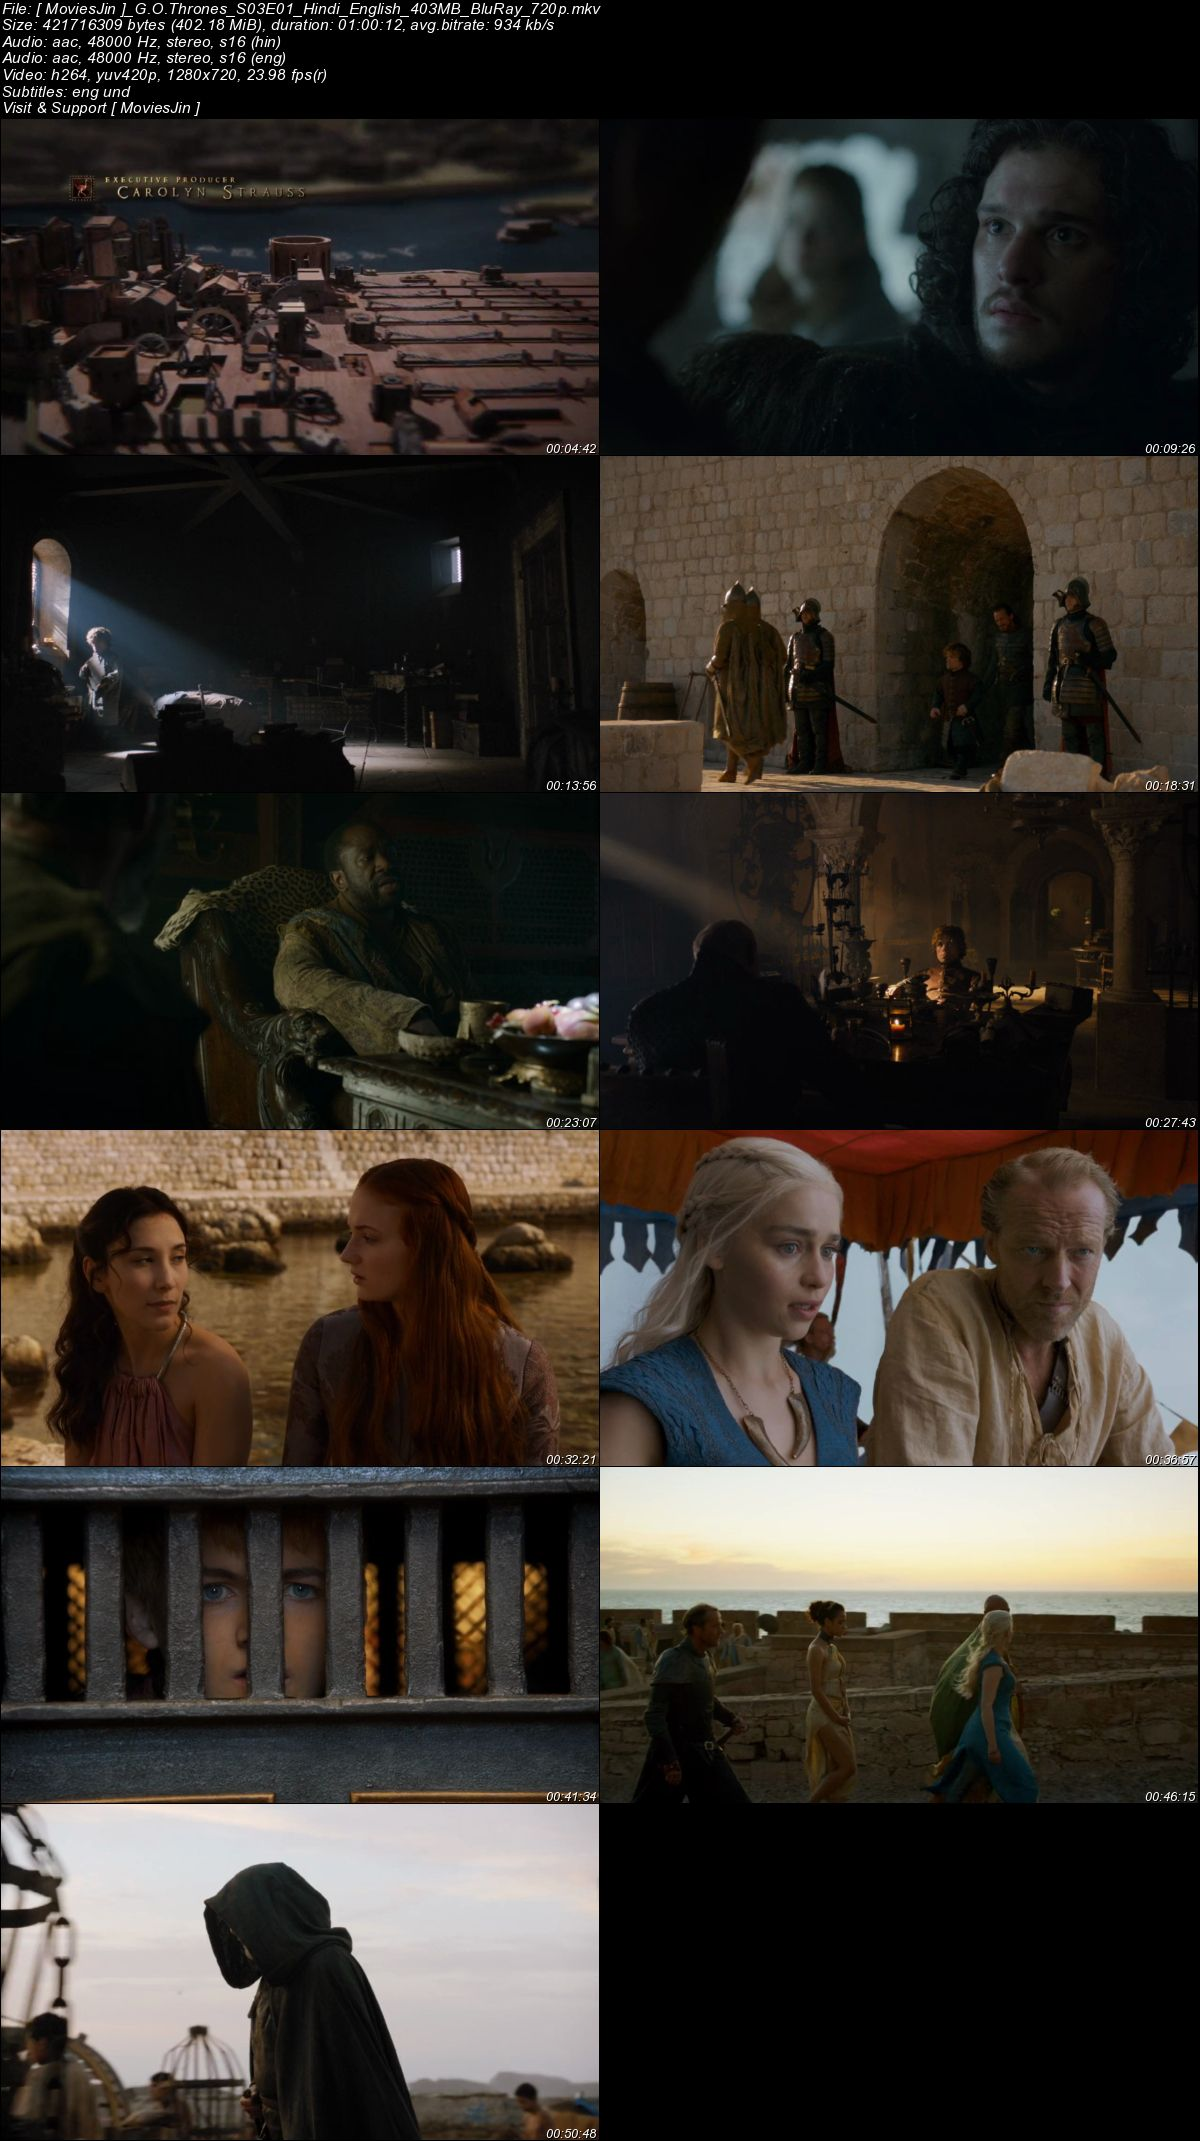 Watch Online Game of Thrones (GOT) S03E01 Hindi BluRay Dual Audio 400MB 720p Full season Download 300mb Movies